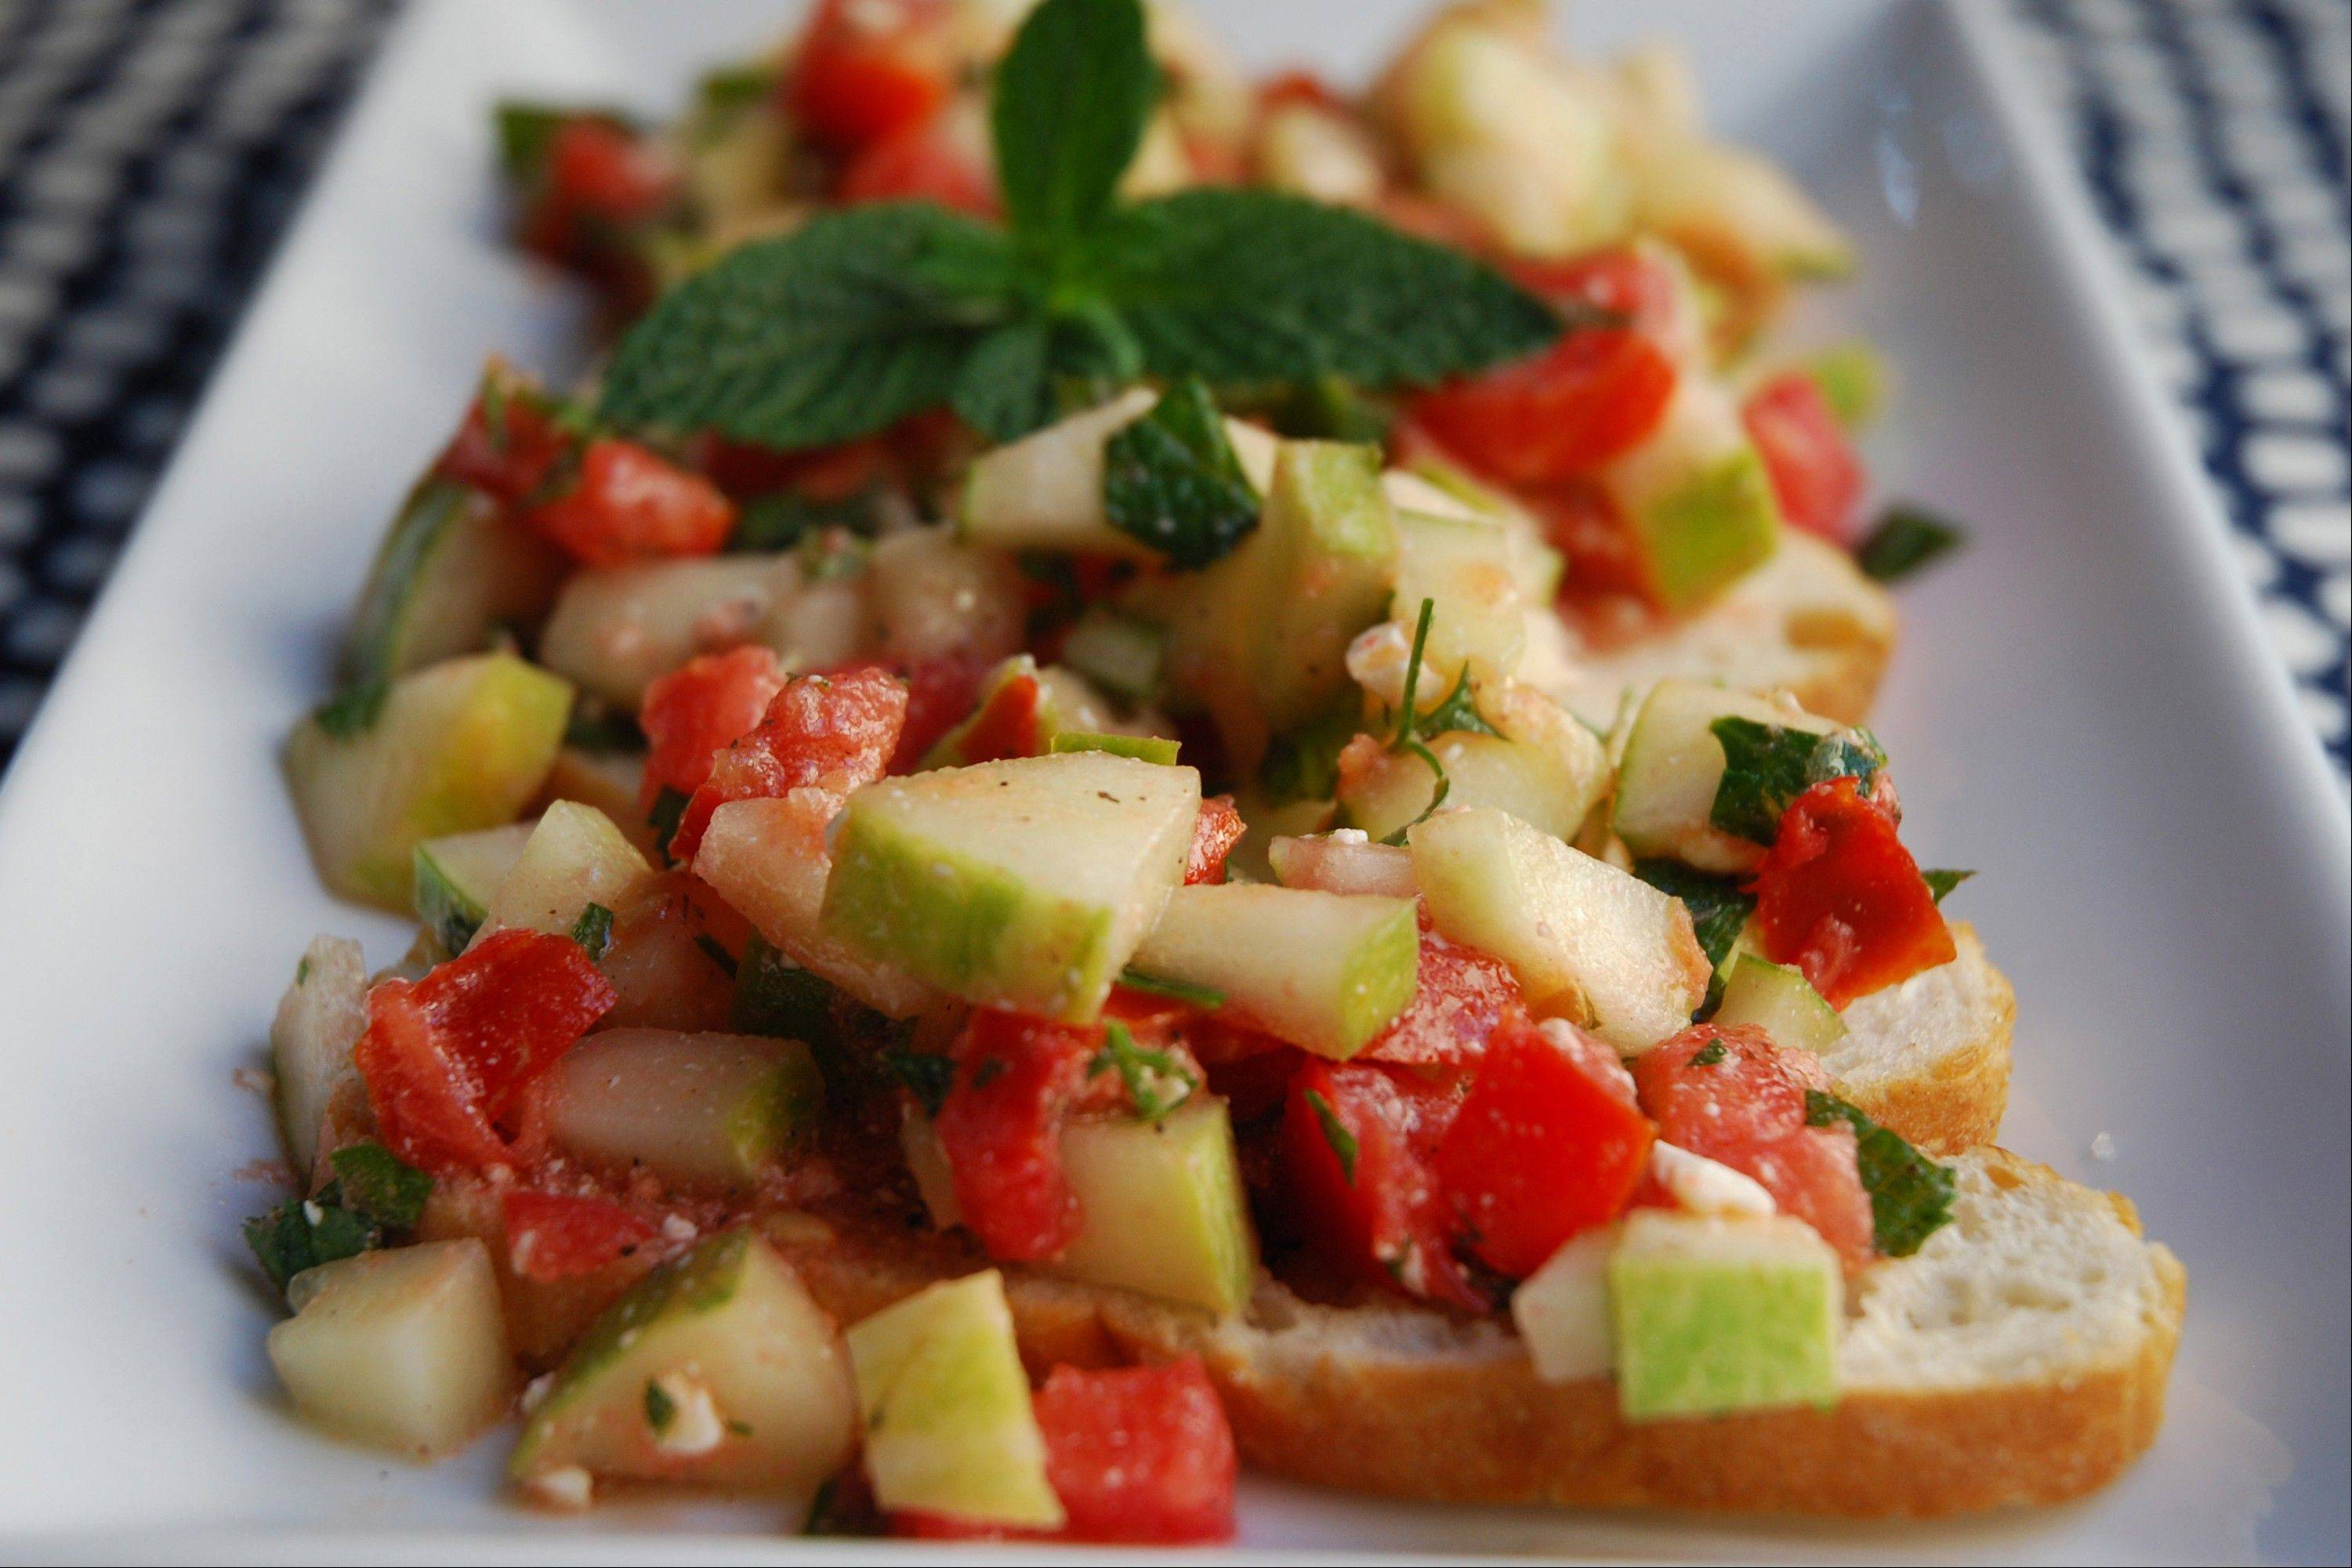 Summer's bounty of cukes and tomatoes combine for a fancy appetizer.